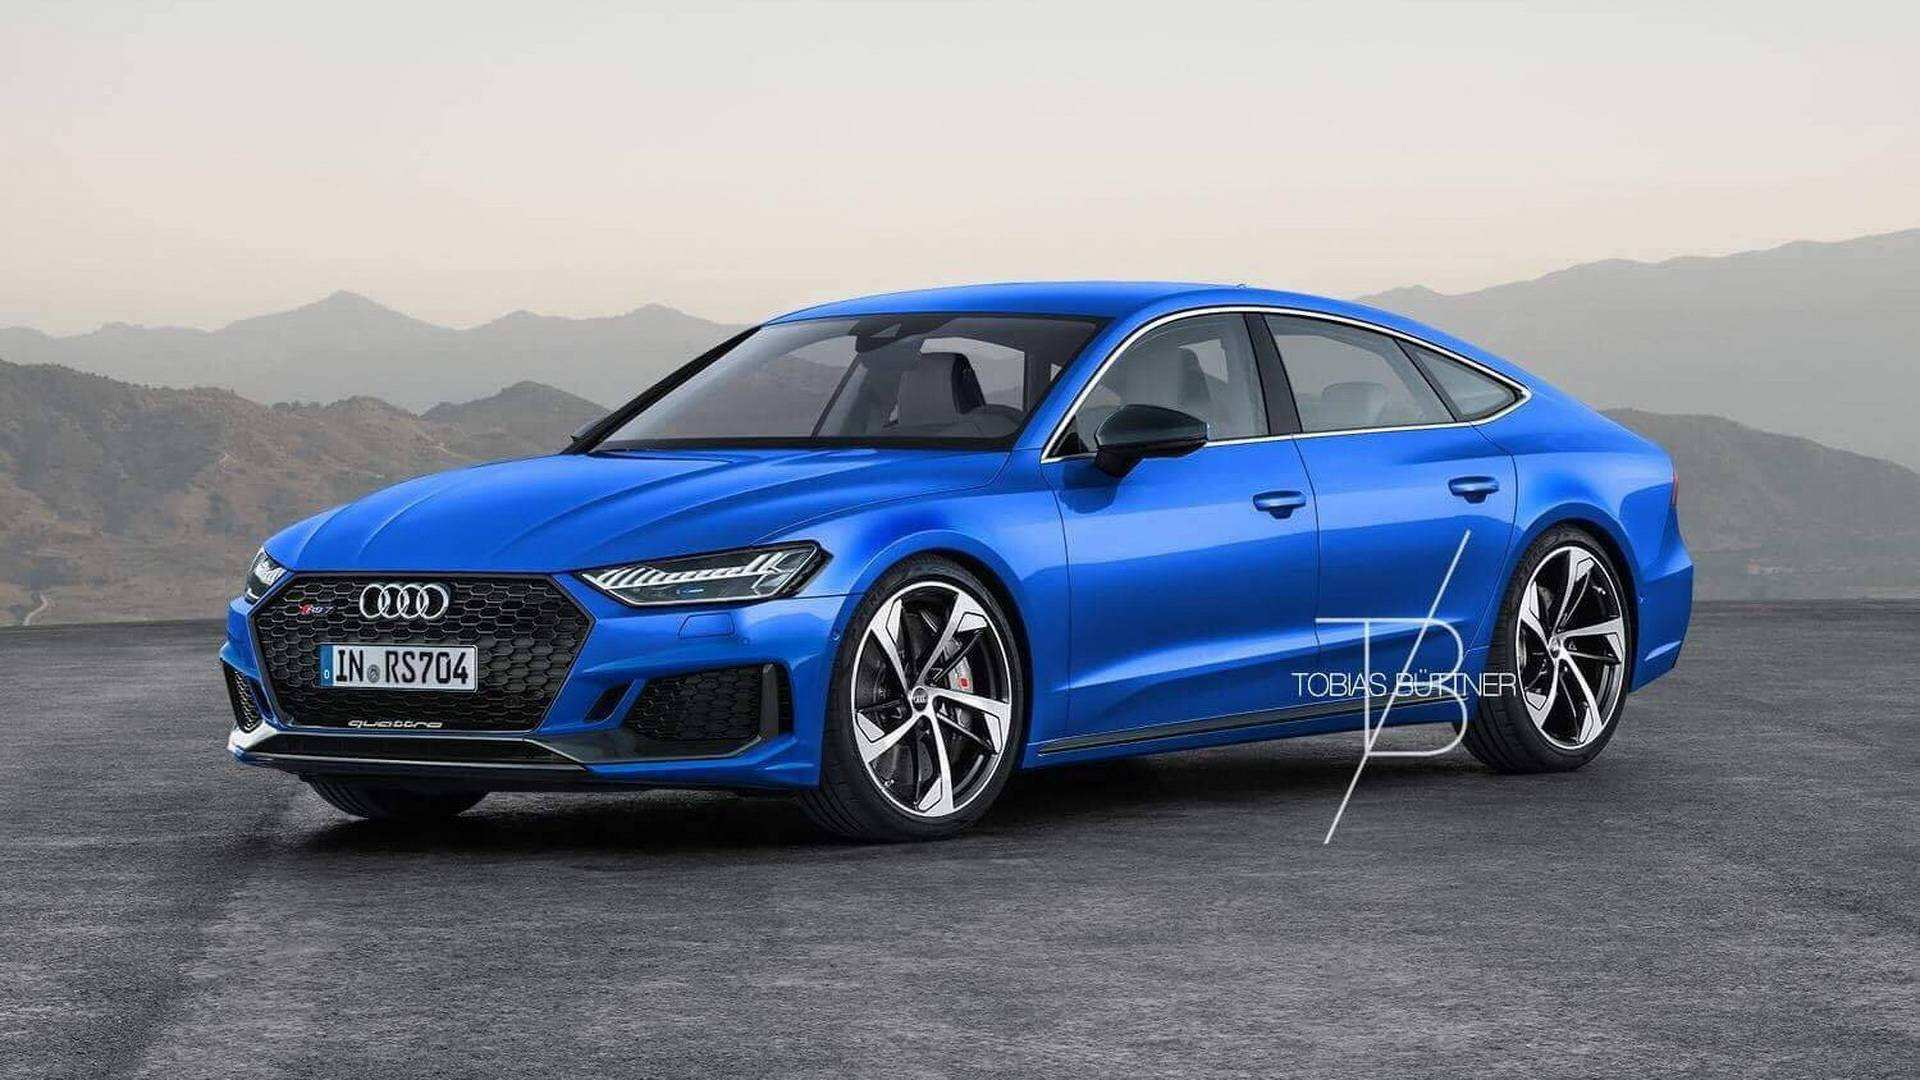 79 A 2019 Audi Rs7 Release Date And Concept